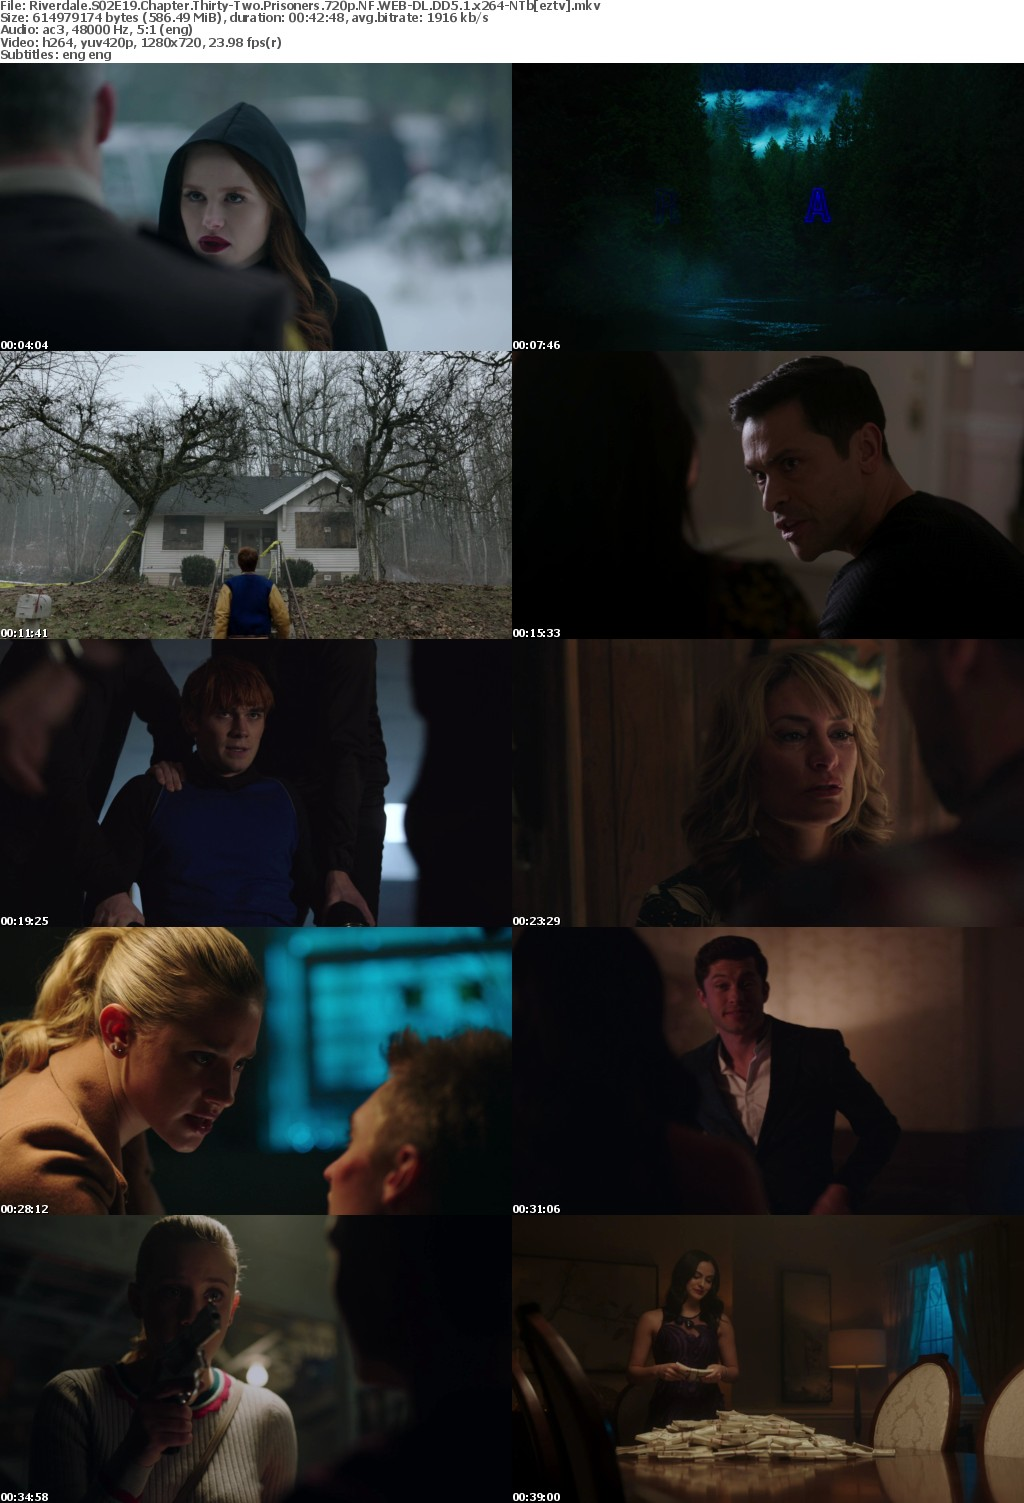 Riverdale S02E19 Chapter Thirty-Two Prisoners 720p NF WEB-DL DD5 1 x264-NTb